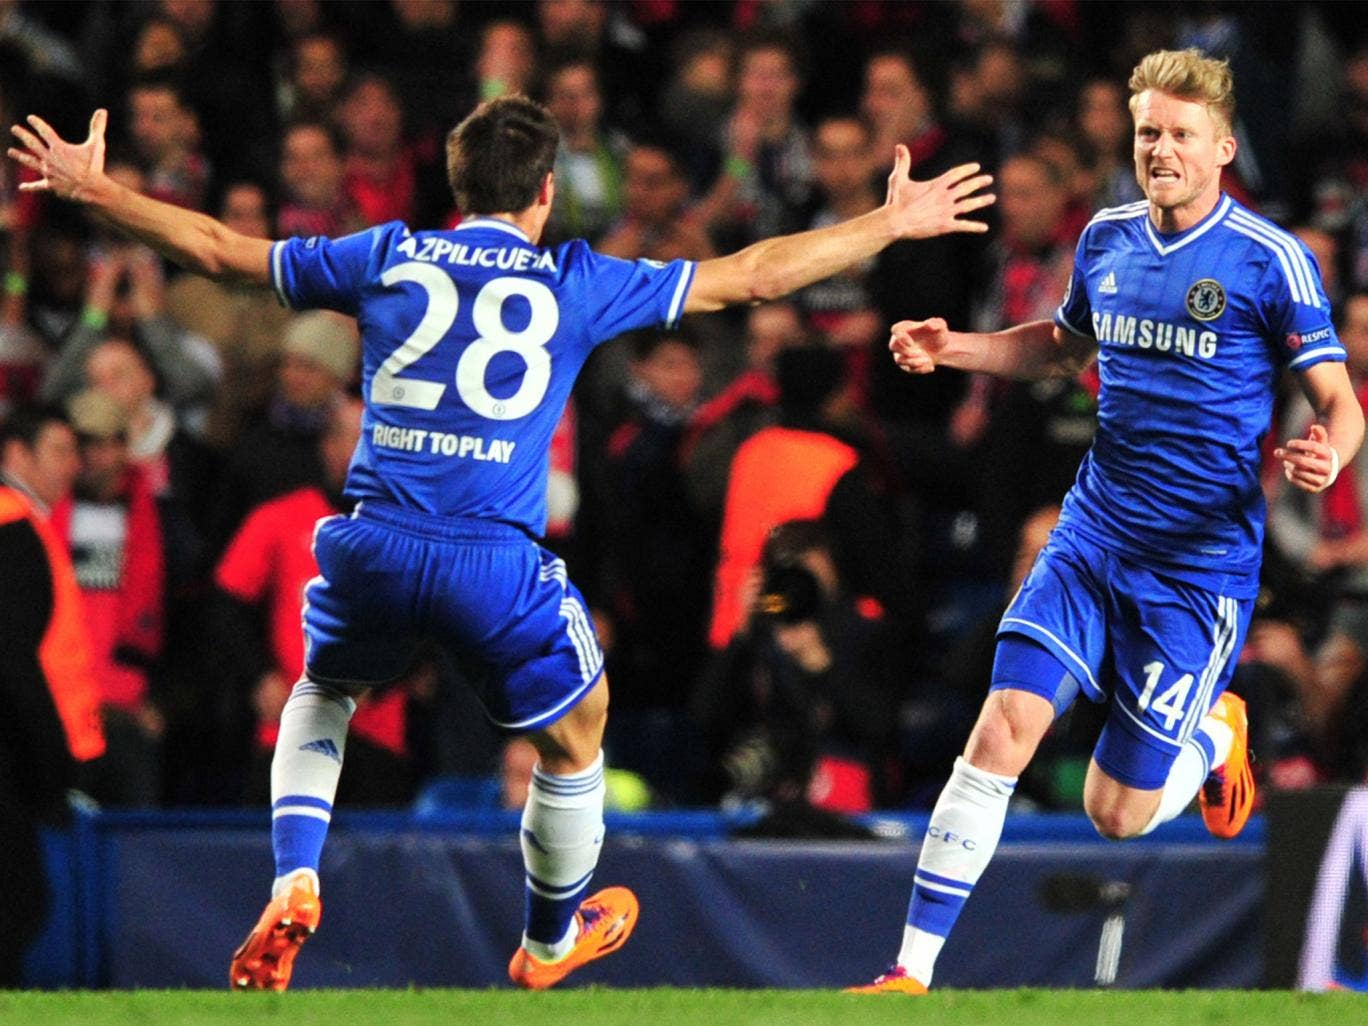 Andre Schurrle celebrates his goal